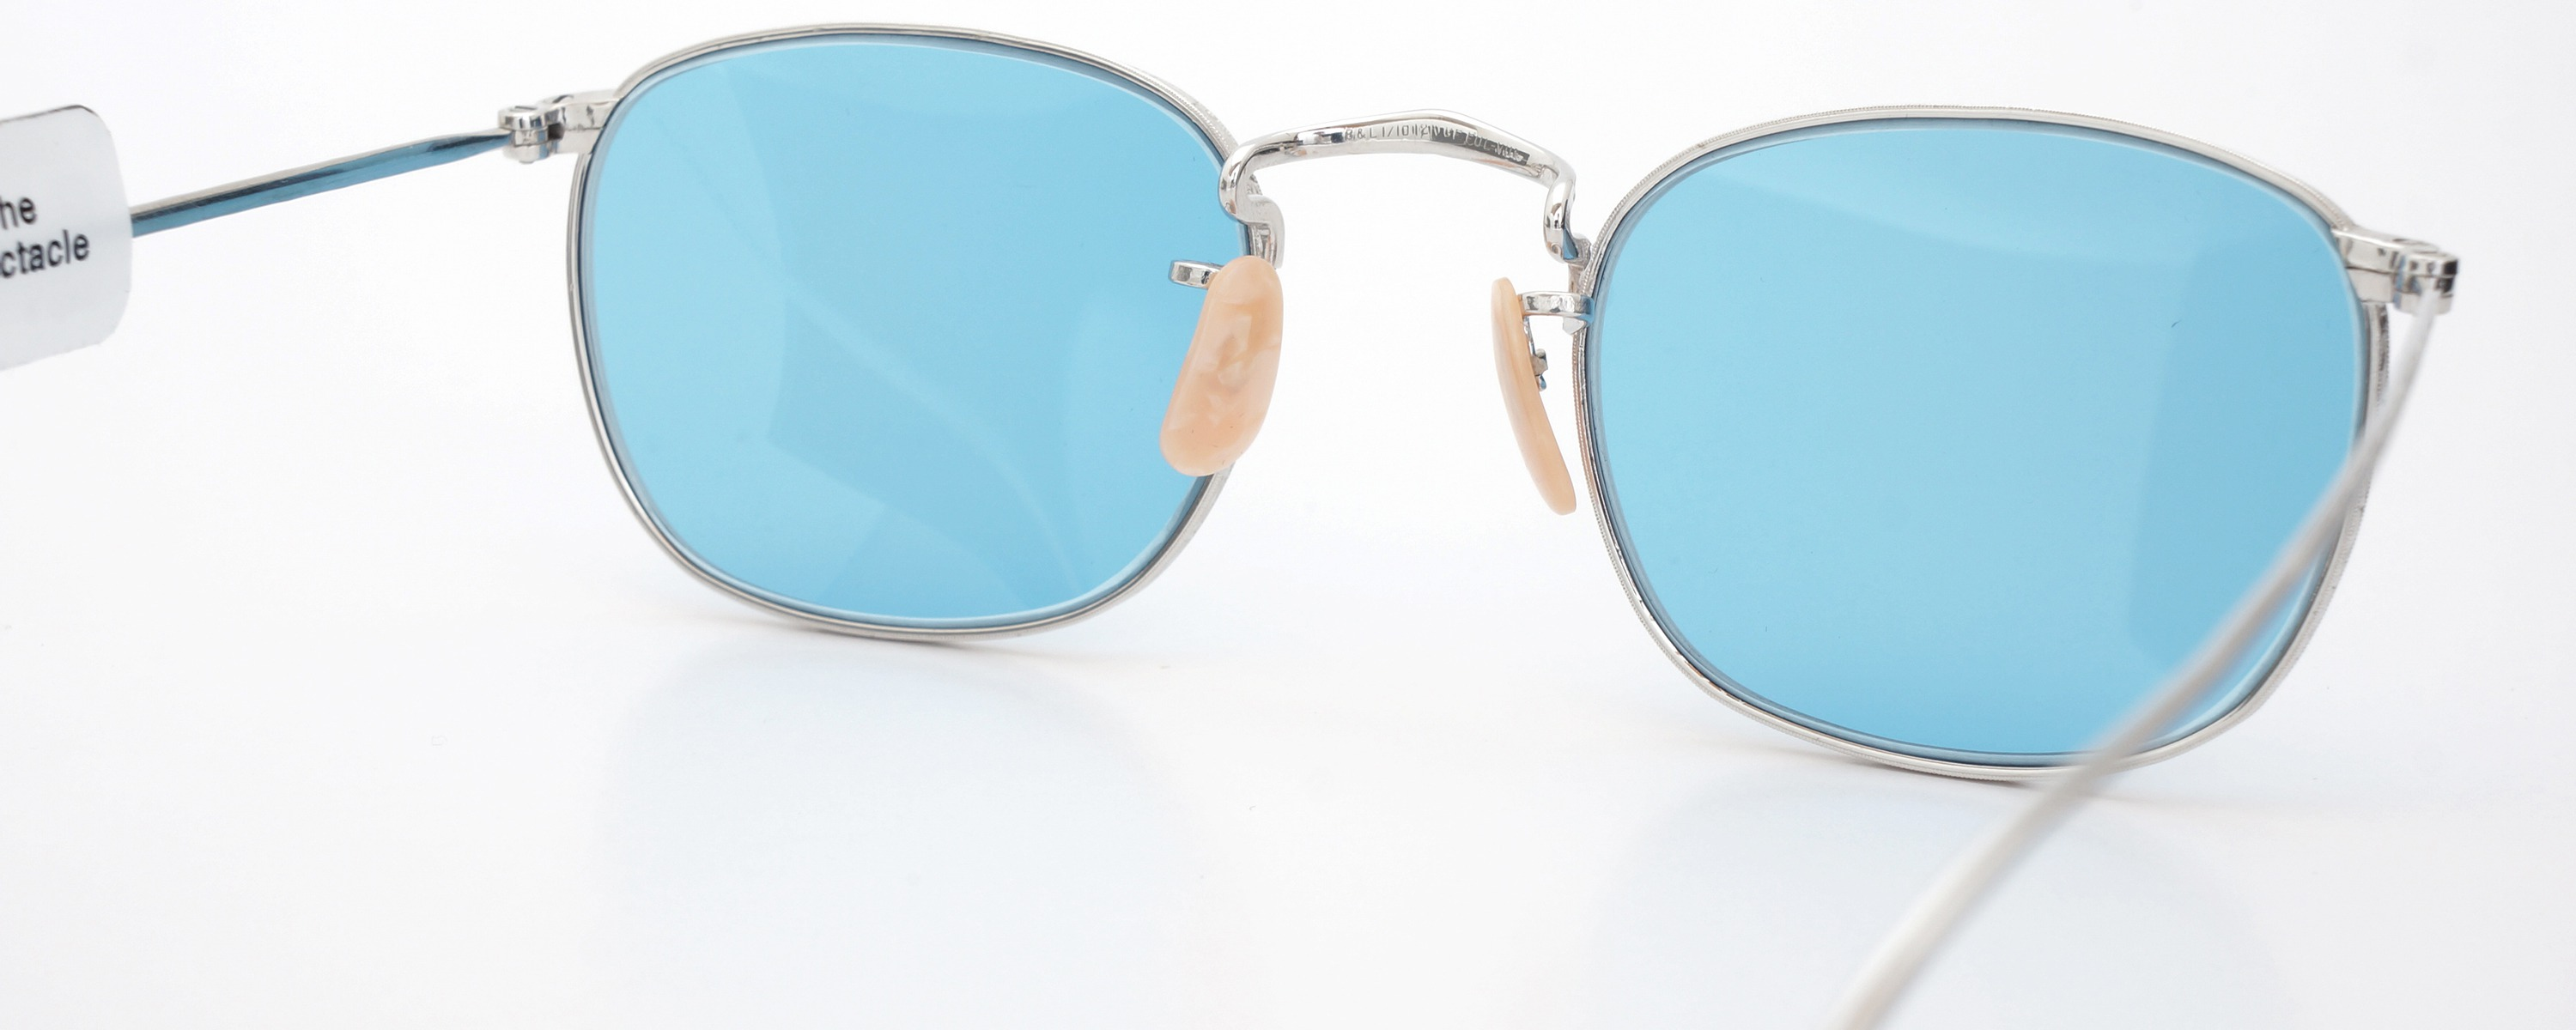 The Spectacle メガネ 1930s-40s Bausch&Lomb Full-Frame Ful-Vue Whitaker WG 45-21 Light-Blue-Lense イメージ8